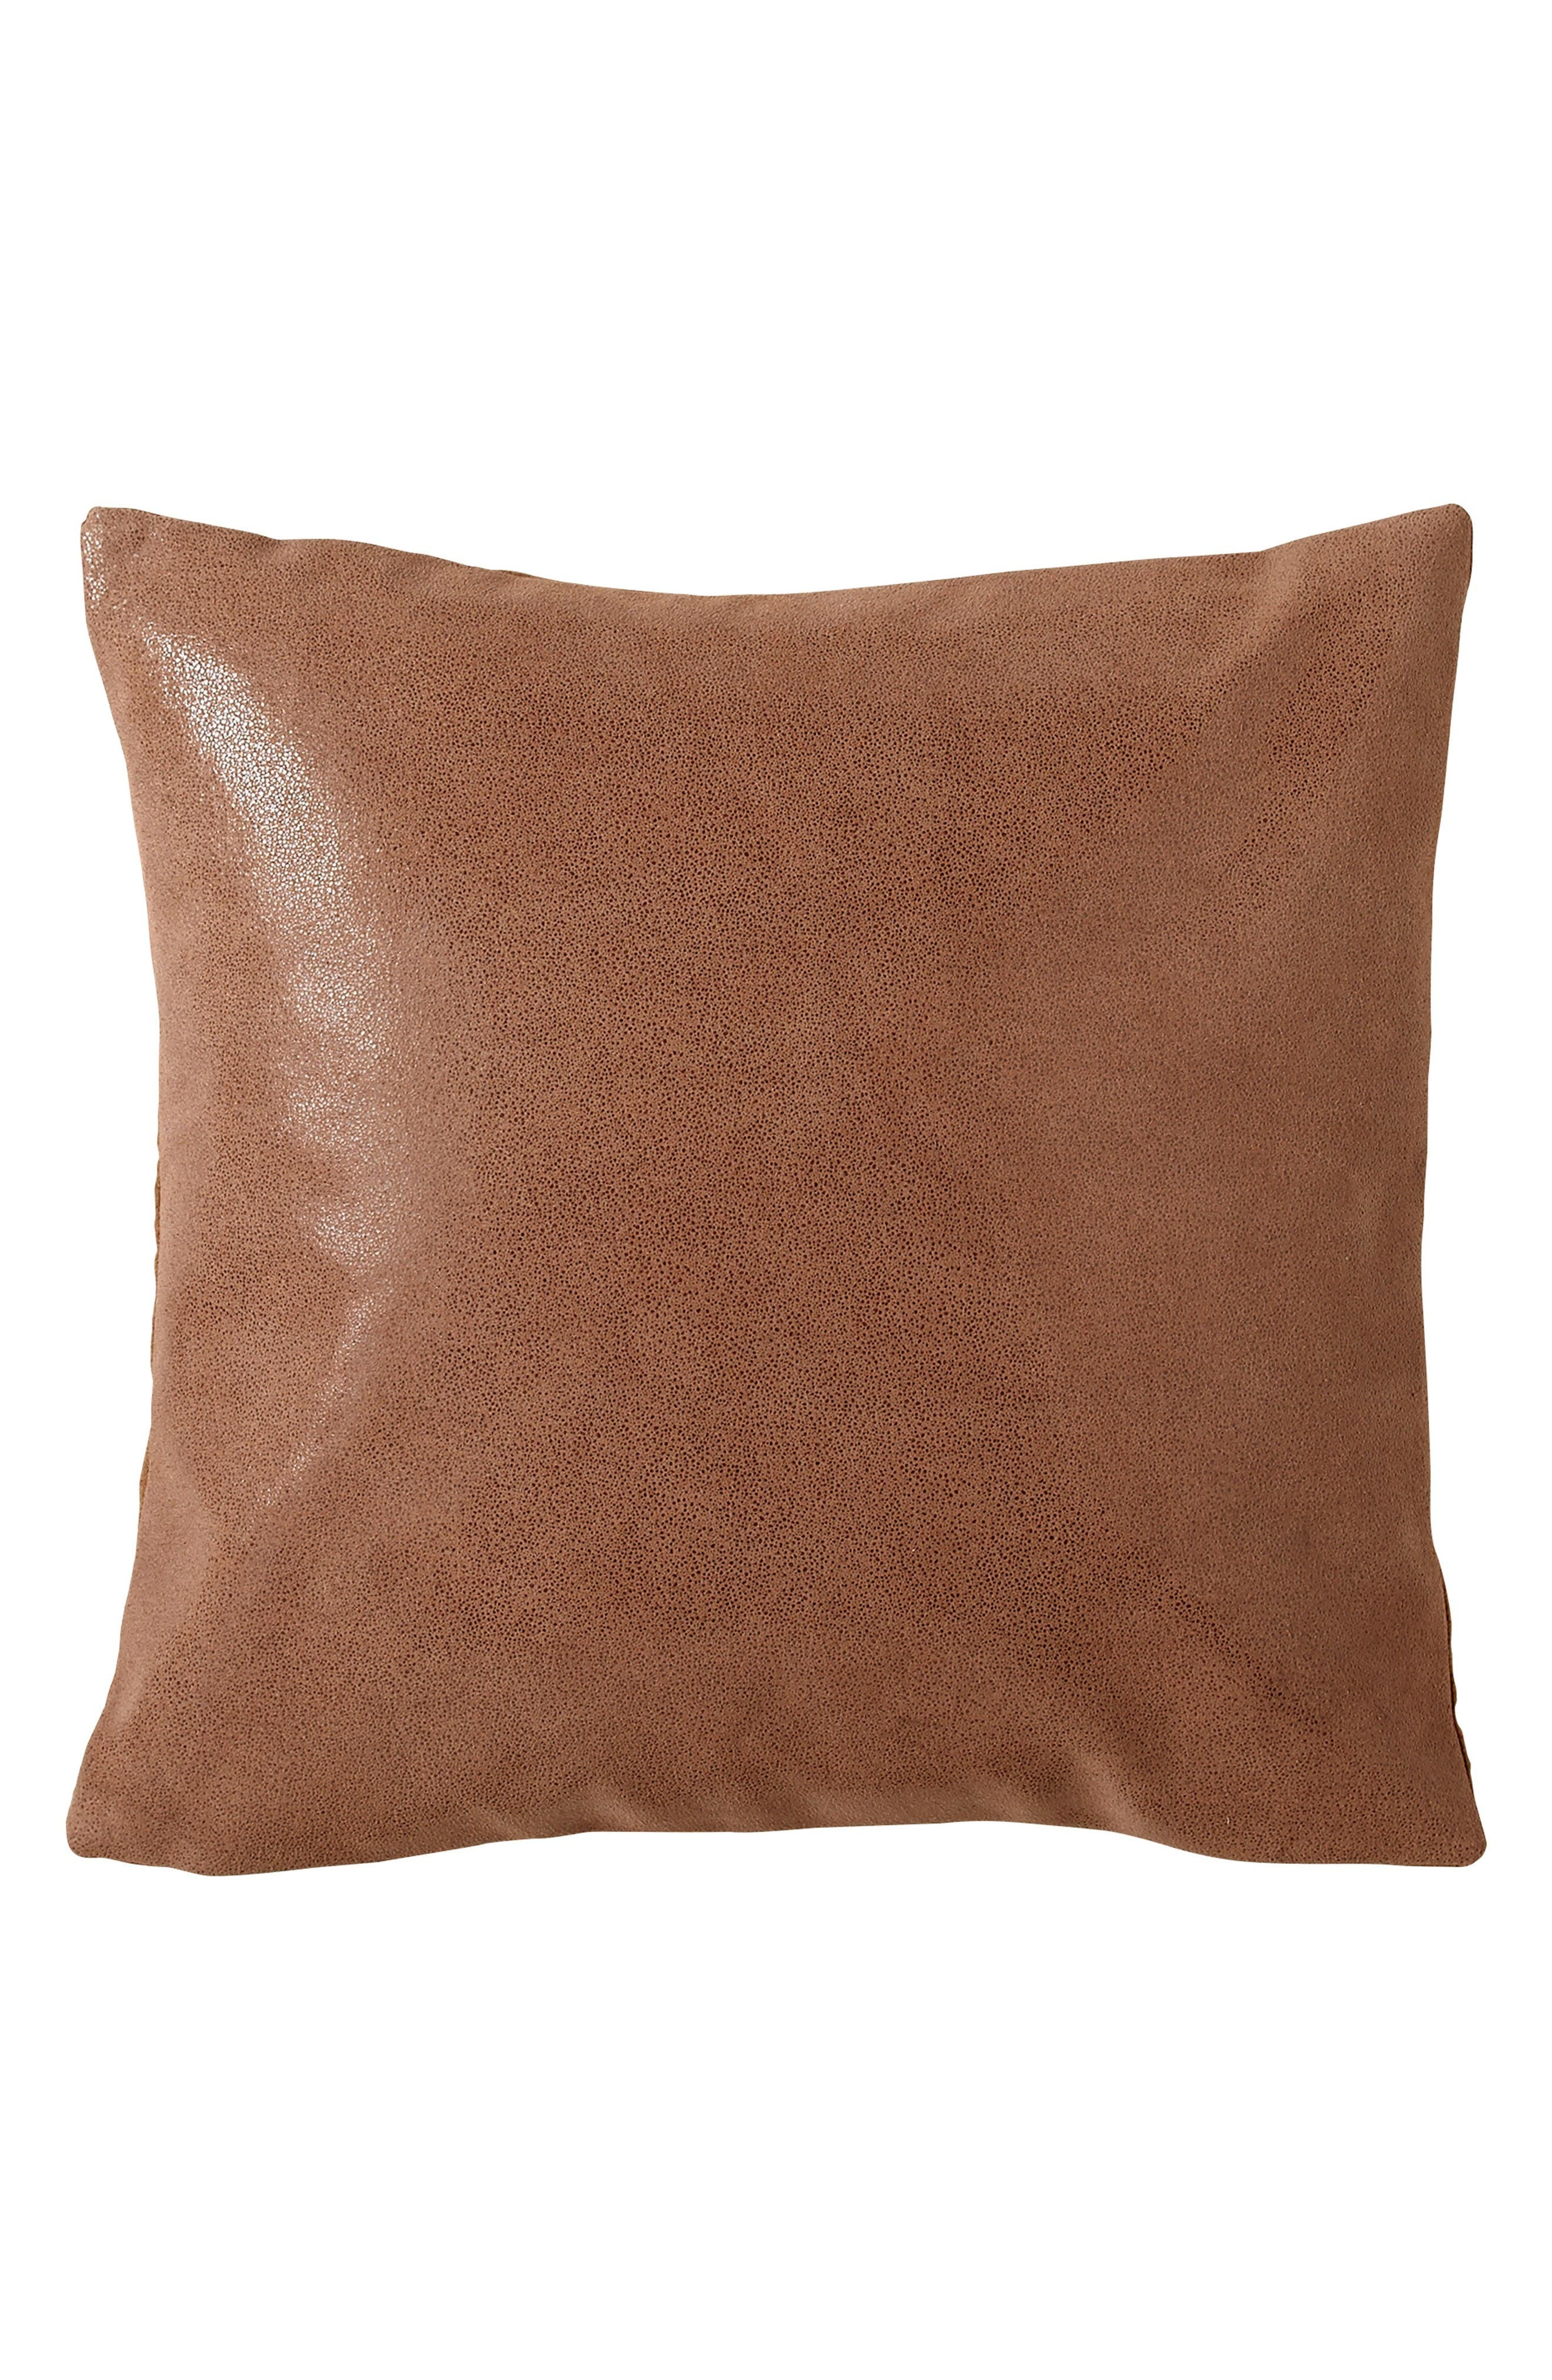 Main Image - Donna Karan Home Collection Awakening Lacquer Printed Leather Accent Pillow